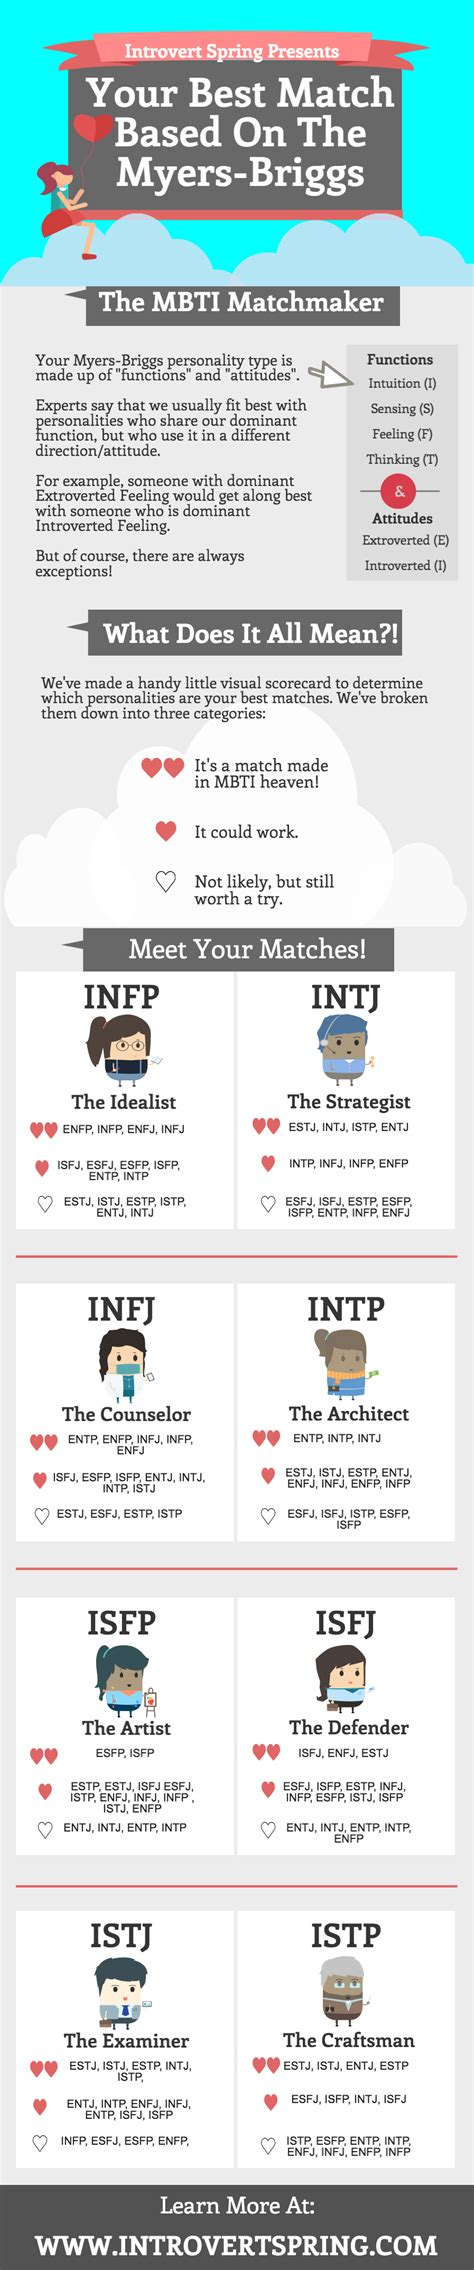 Are We Compatible? MBTI Relationship Matches For